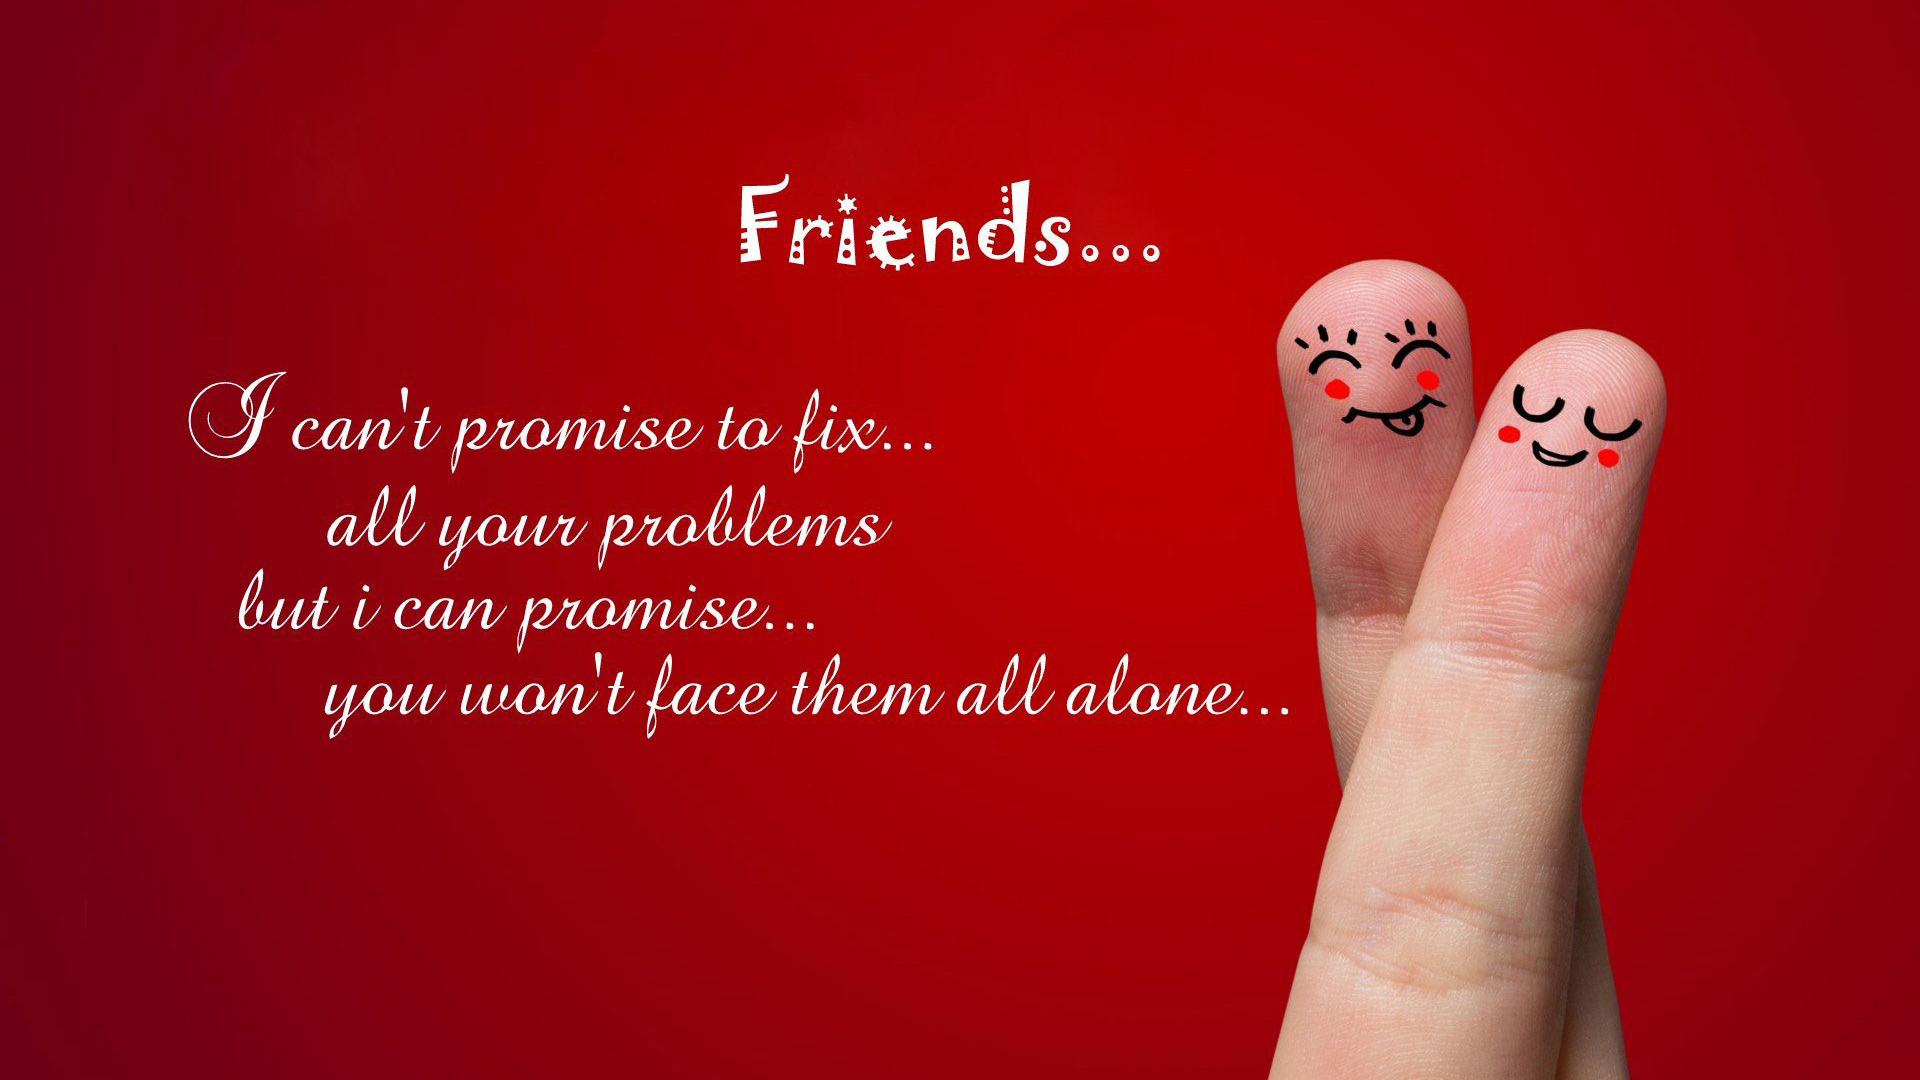 Top 80 Friendship images, greetings and pictures for WhatsApp Friendship messages with photos